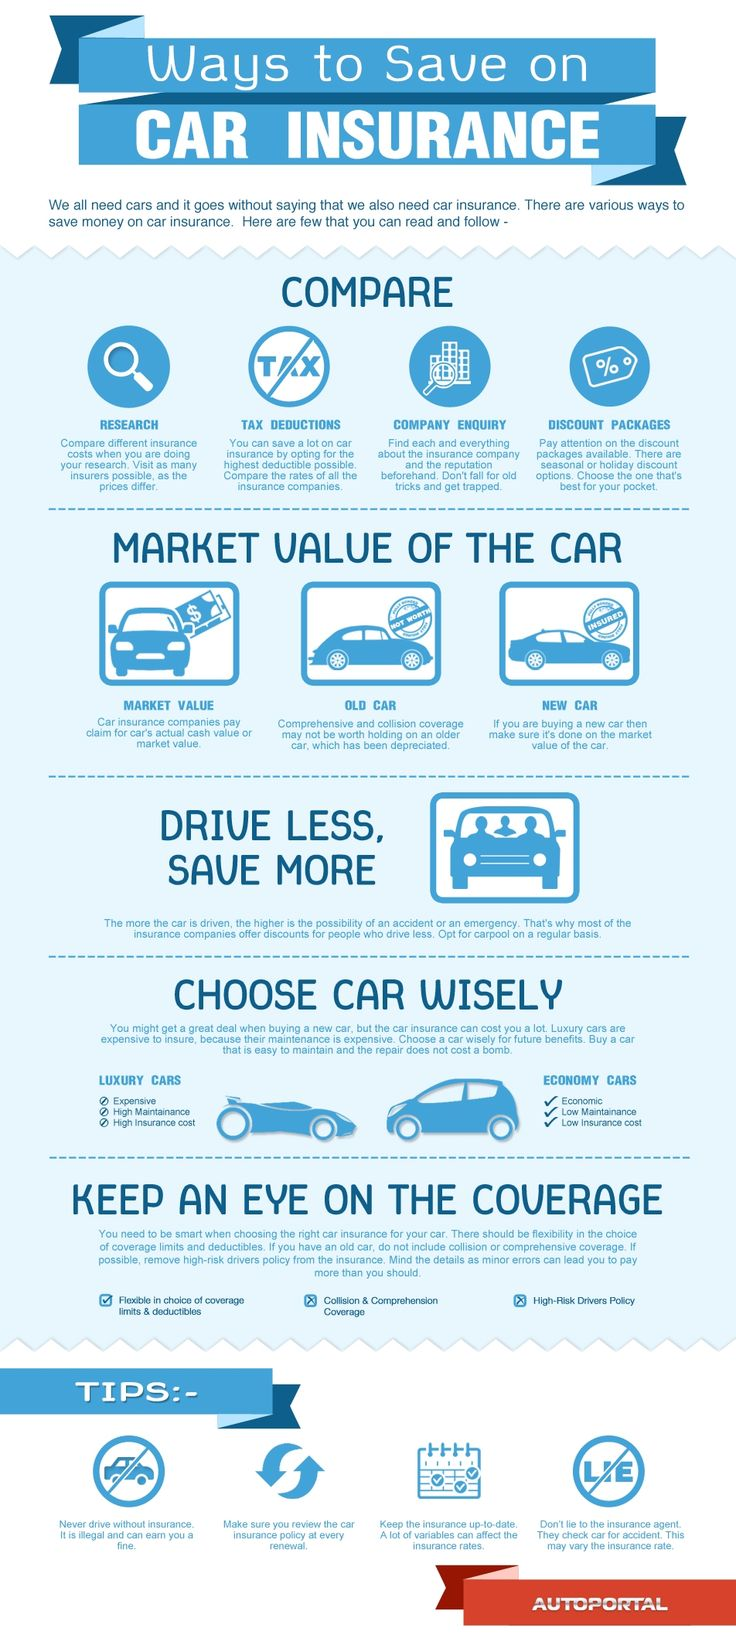 Auto Insurance Quotes Comparison Fair 23 Best Compare Car Insurance Images On Pinterest  Compare Car . Design Decoration